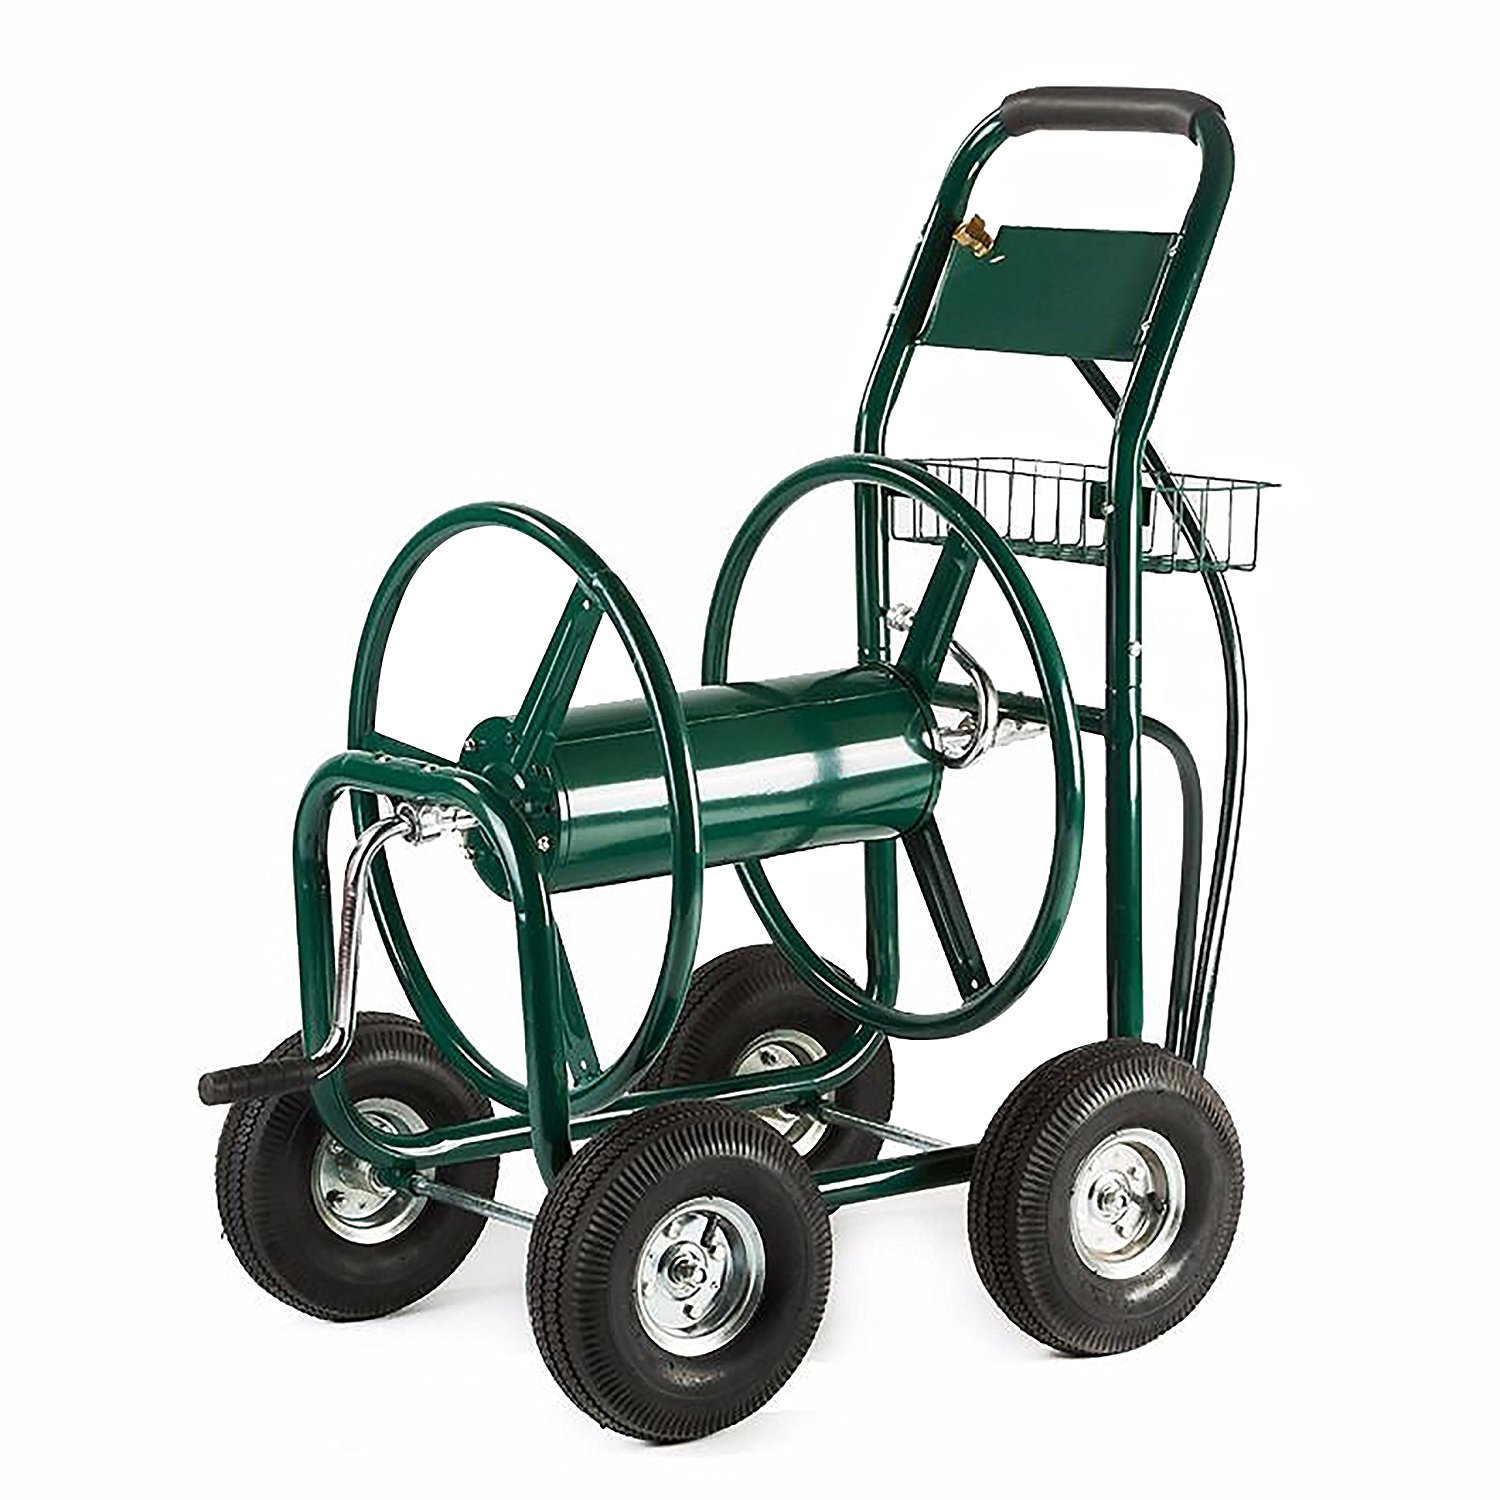 Heavy Duty Hose Reel Cart 4 Wheel 400 Foot, Green